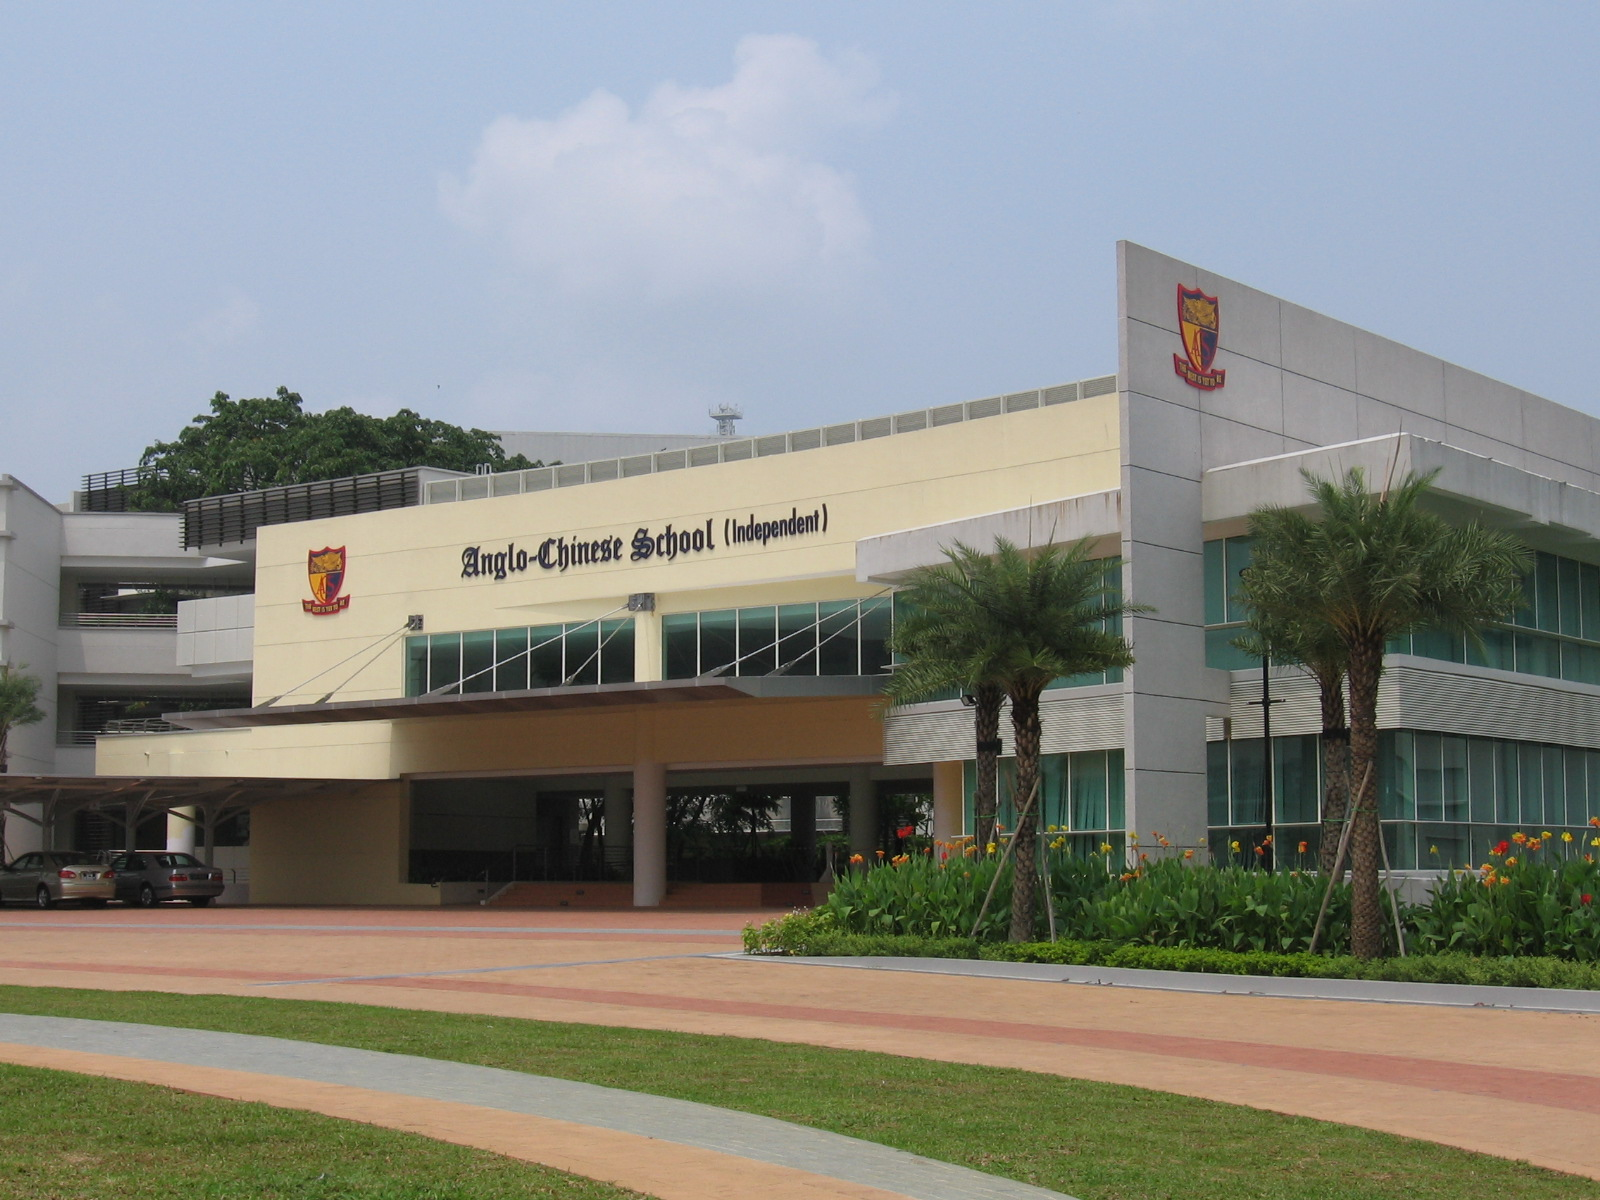 File:Anglo-Chinese School (Independent), Nov 06.JPG - Wikipedia